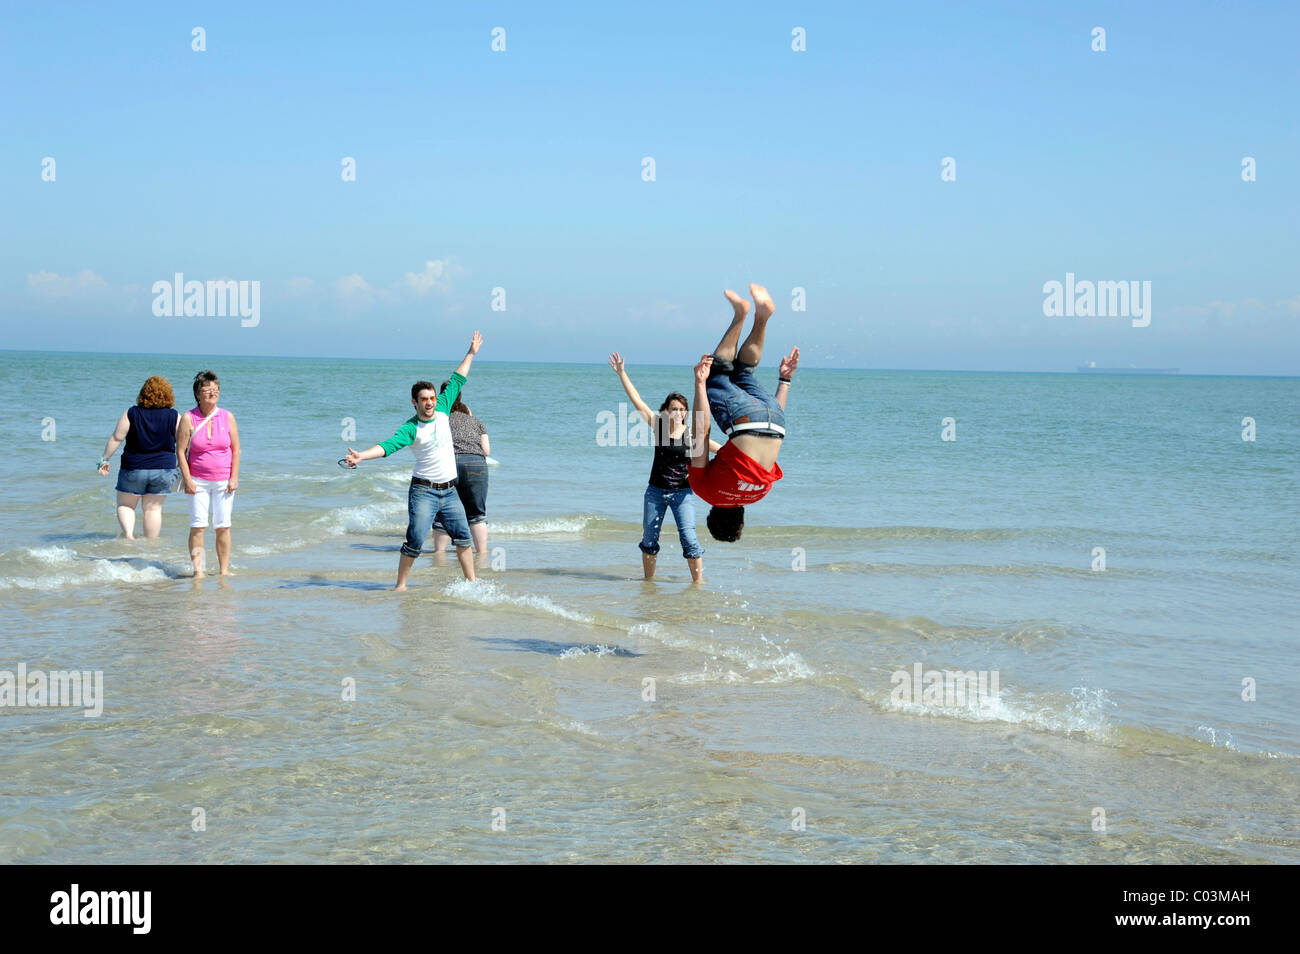 Young person somersaulting in the sea, Skagen, Jutland, Denmark, Europe Stock Photo